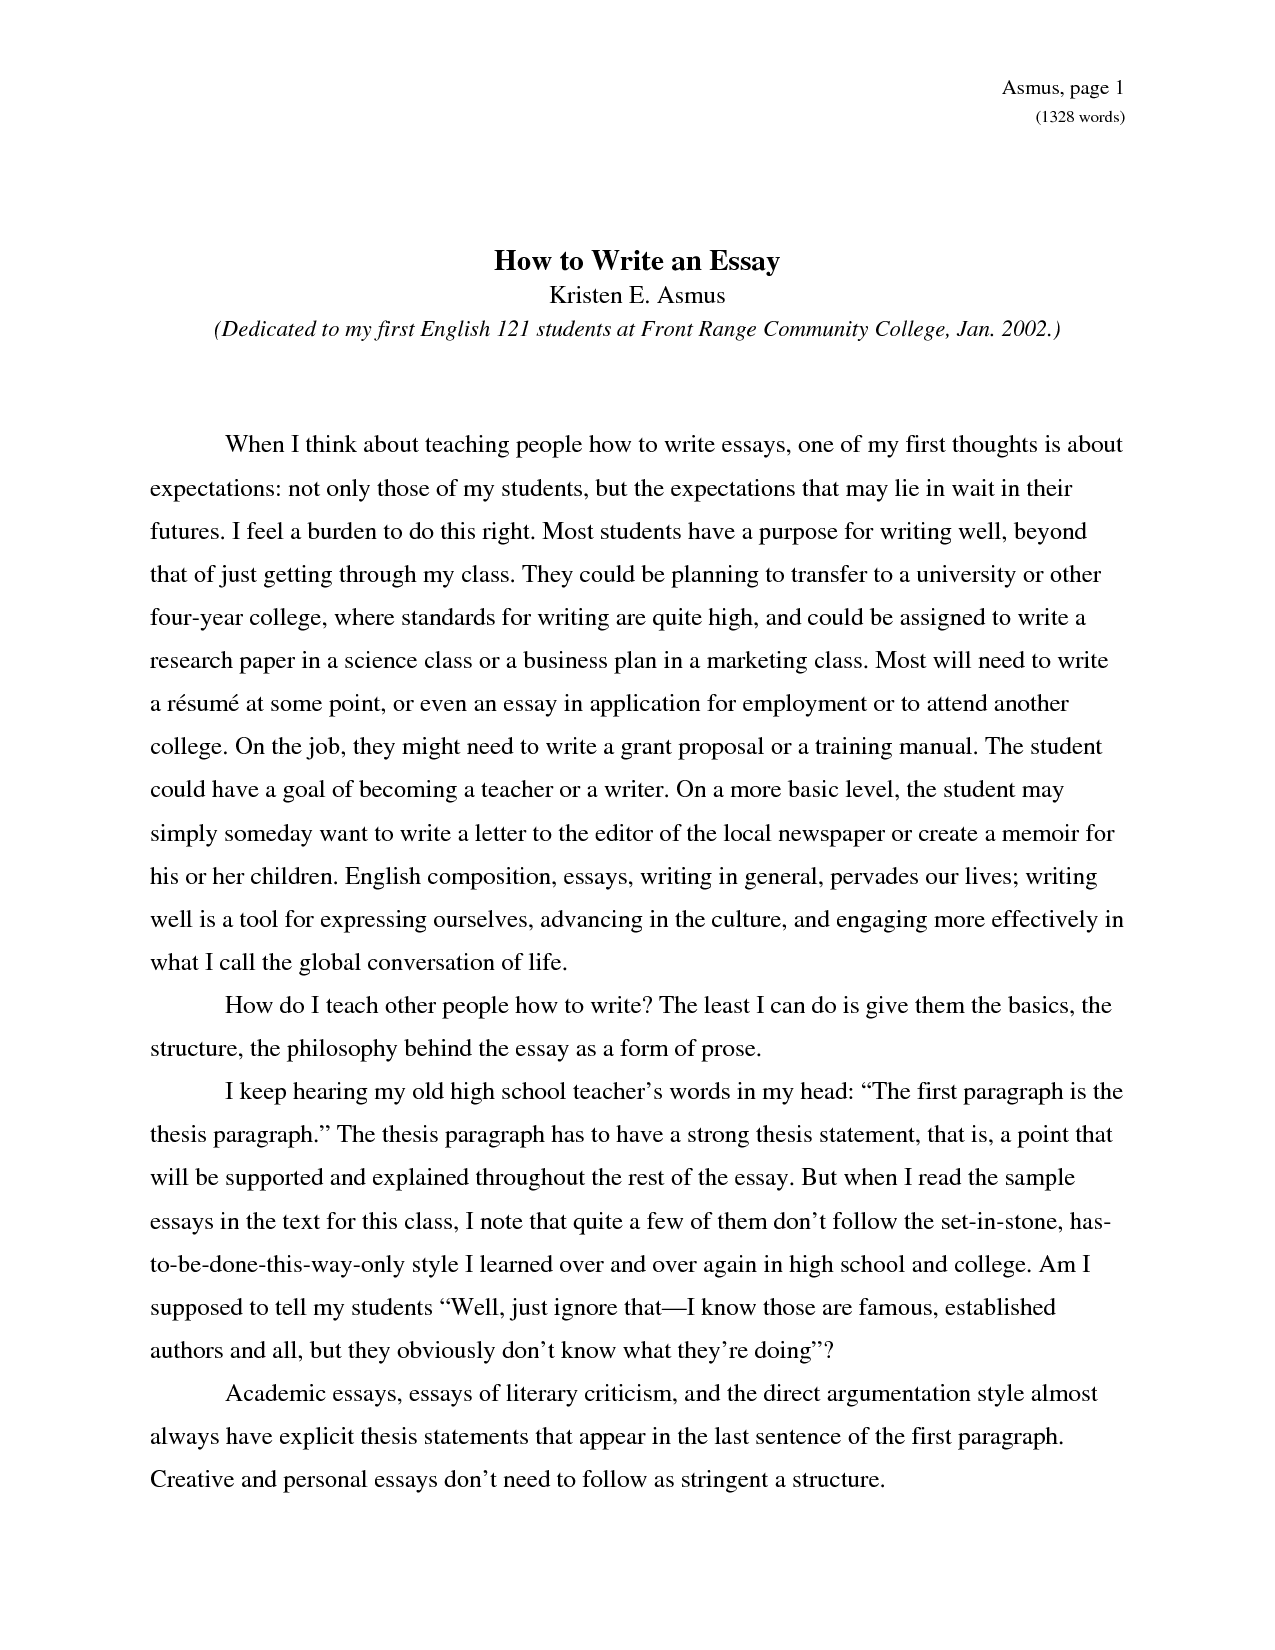 009 W8zti9kc8d Essay Example How To Type Awesome An Fast A One Page Paper In Apa Format Mla On Mac Full